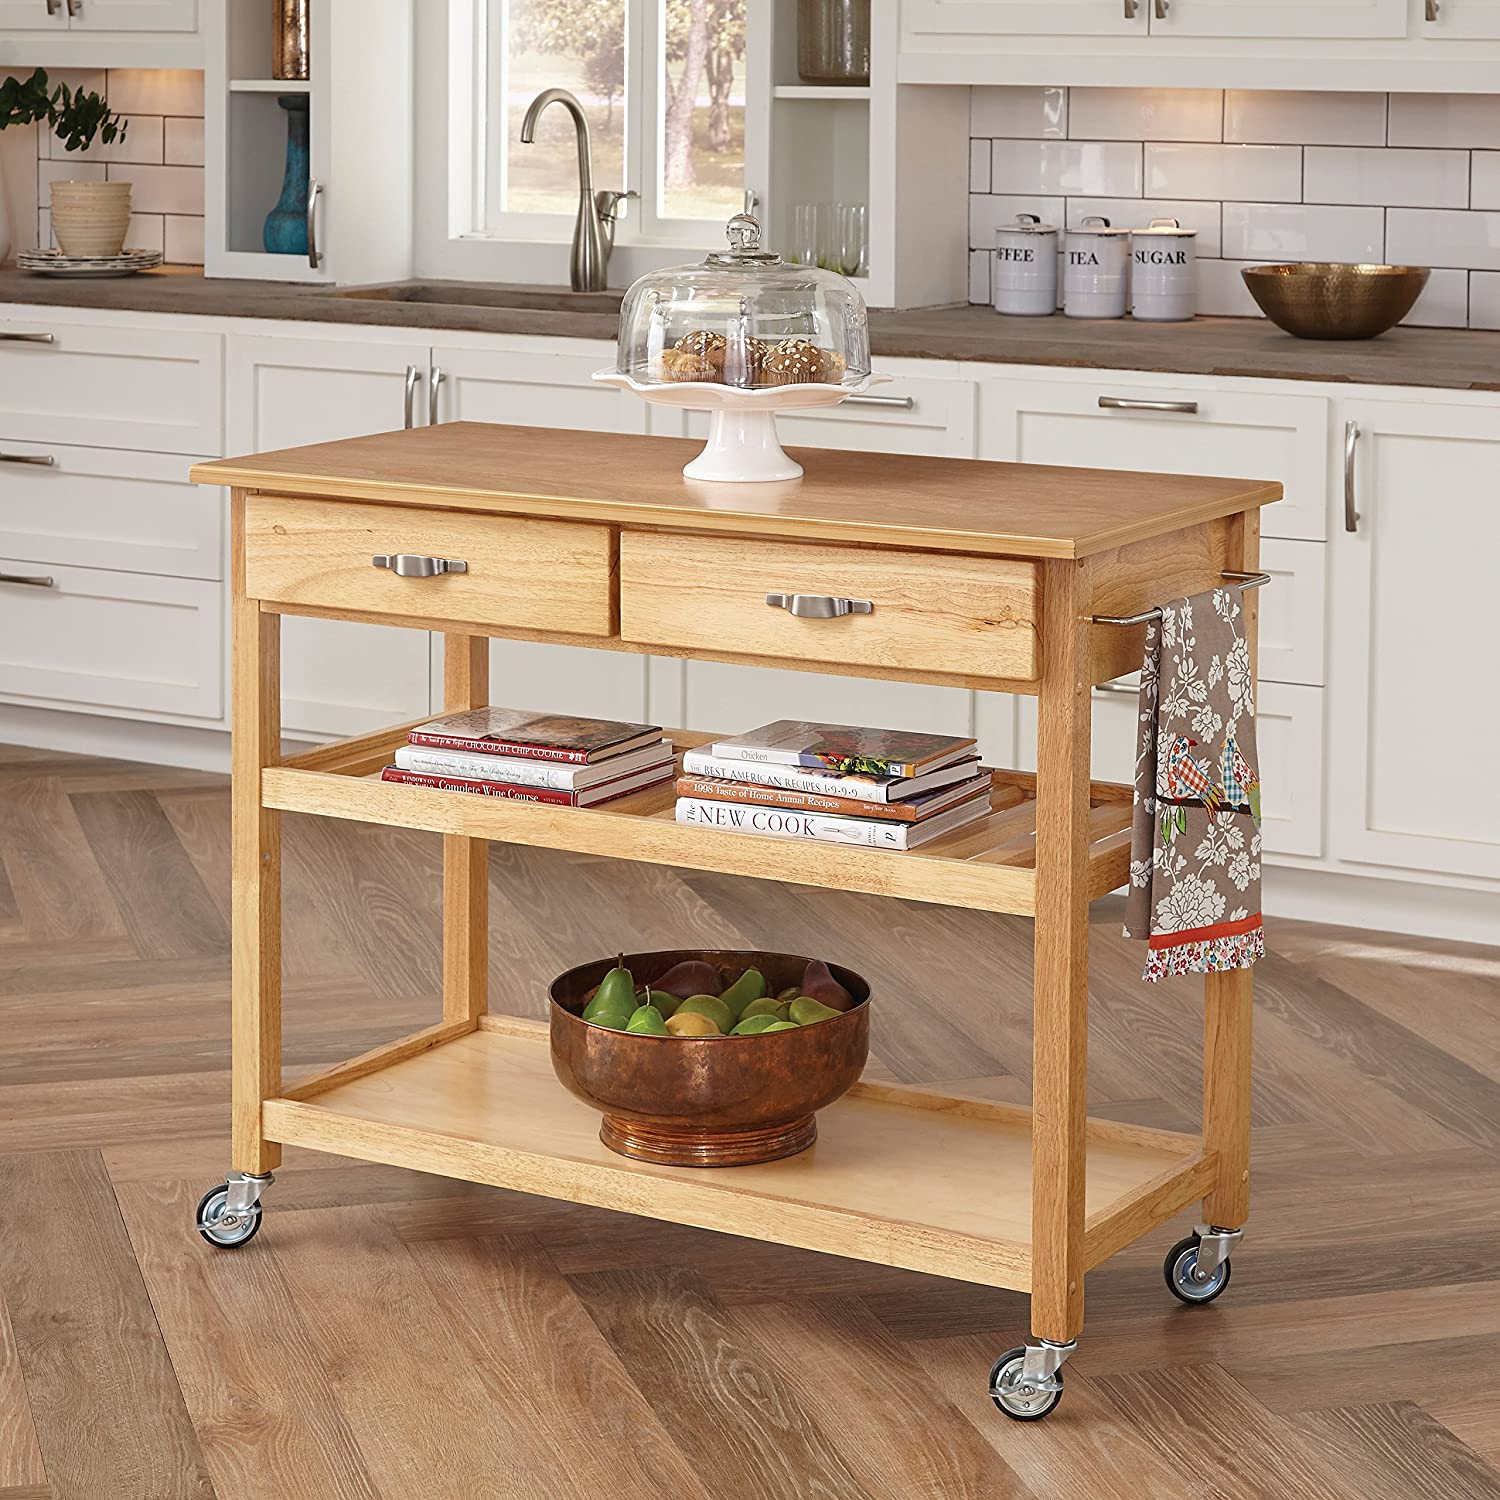 Amazon.com: Home Styles 5216-95 Solid Wood Top Kitchen Cart, Natural ...